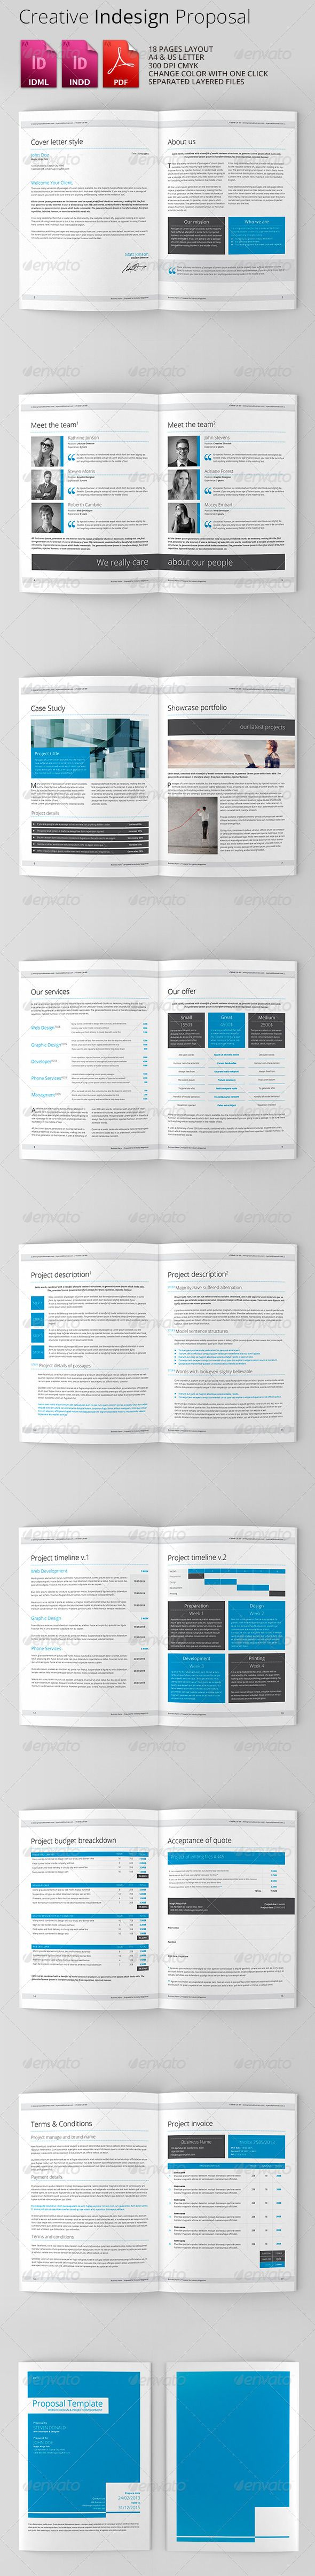 Clean & Creative Indesign Proposal - Proposals & Invoices Stationery